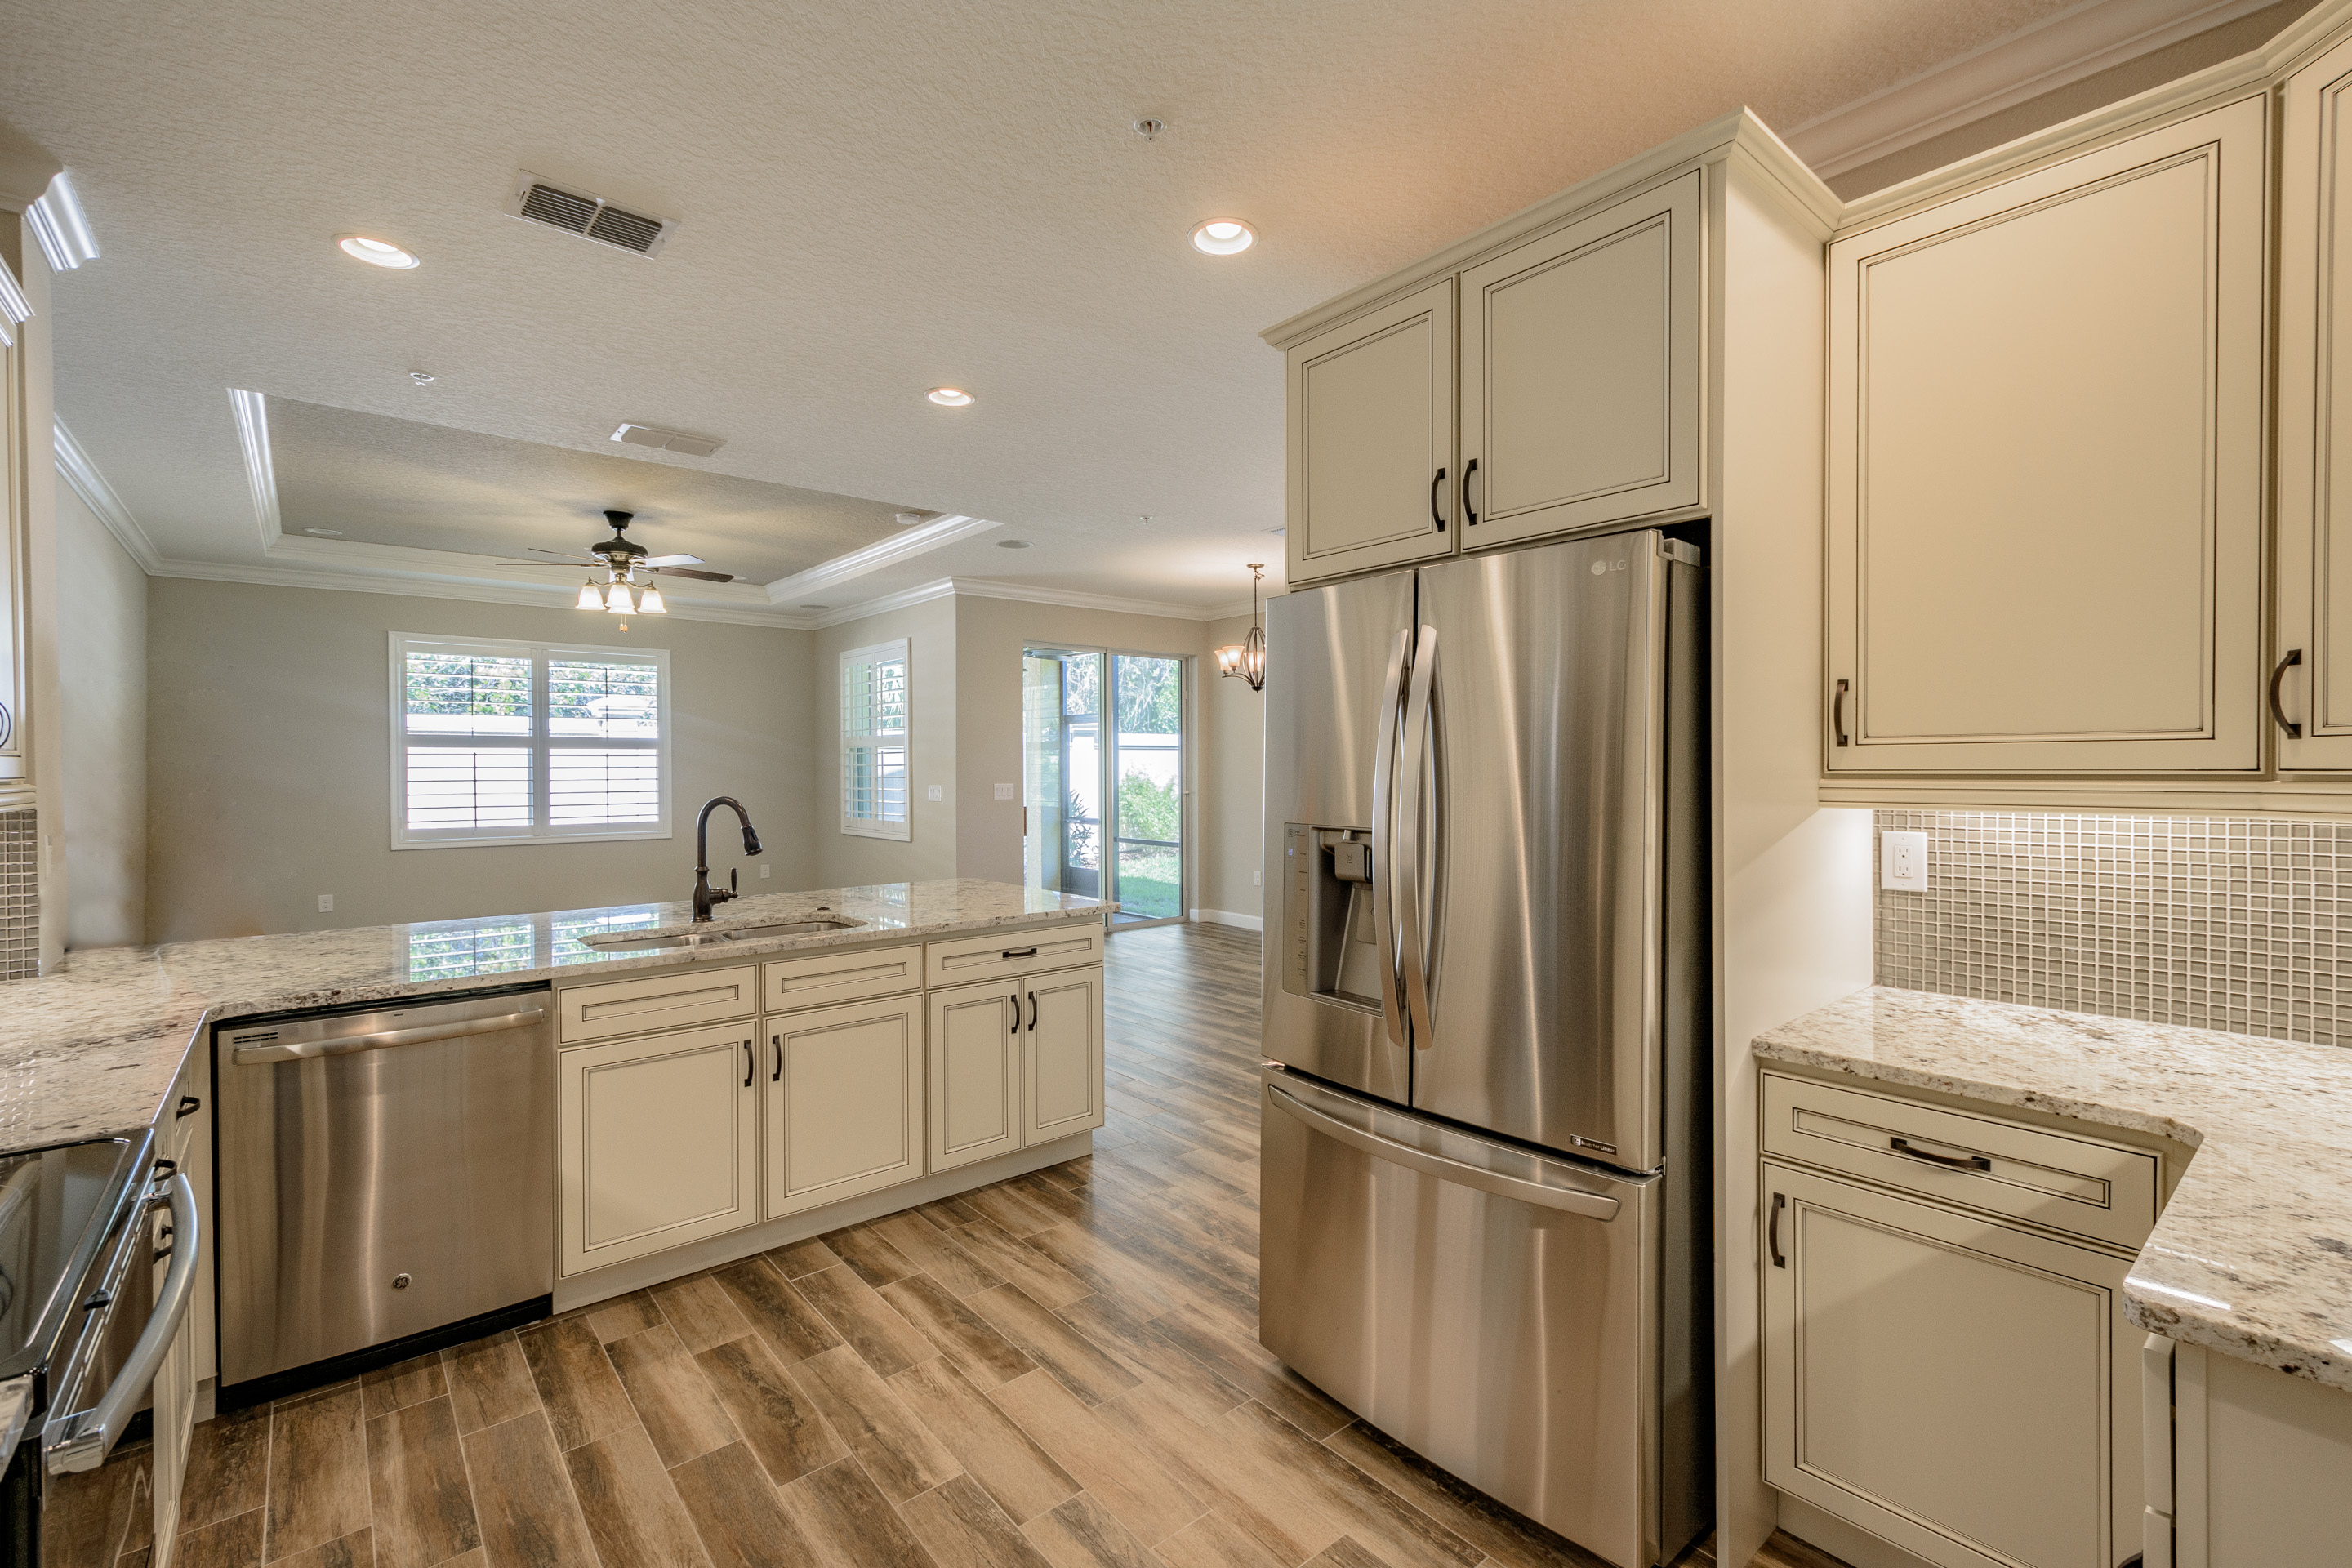 Home for Sale in Lake Mary